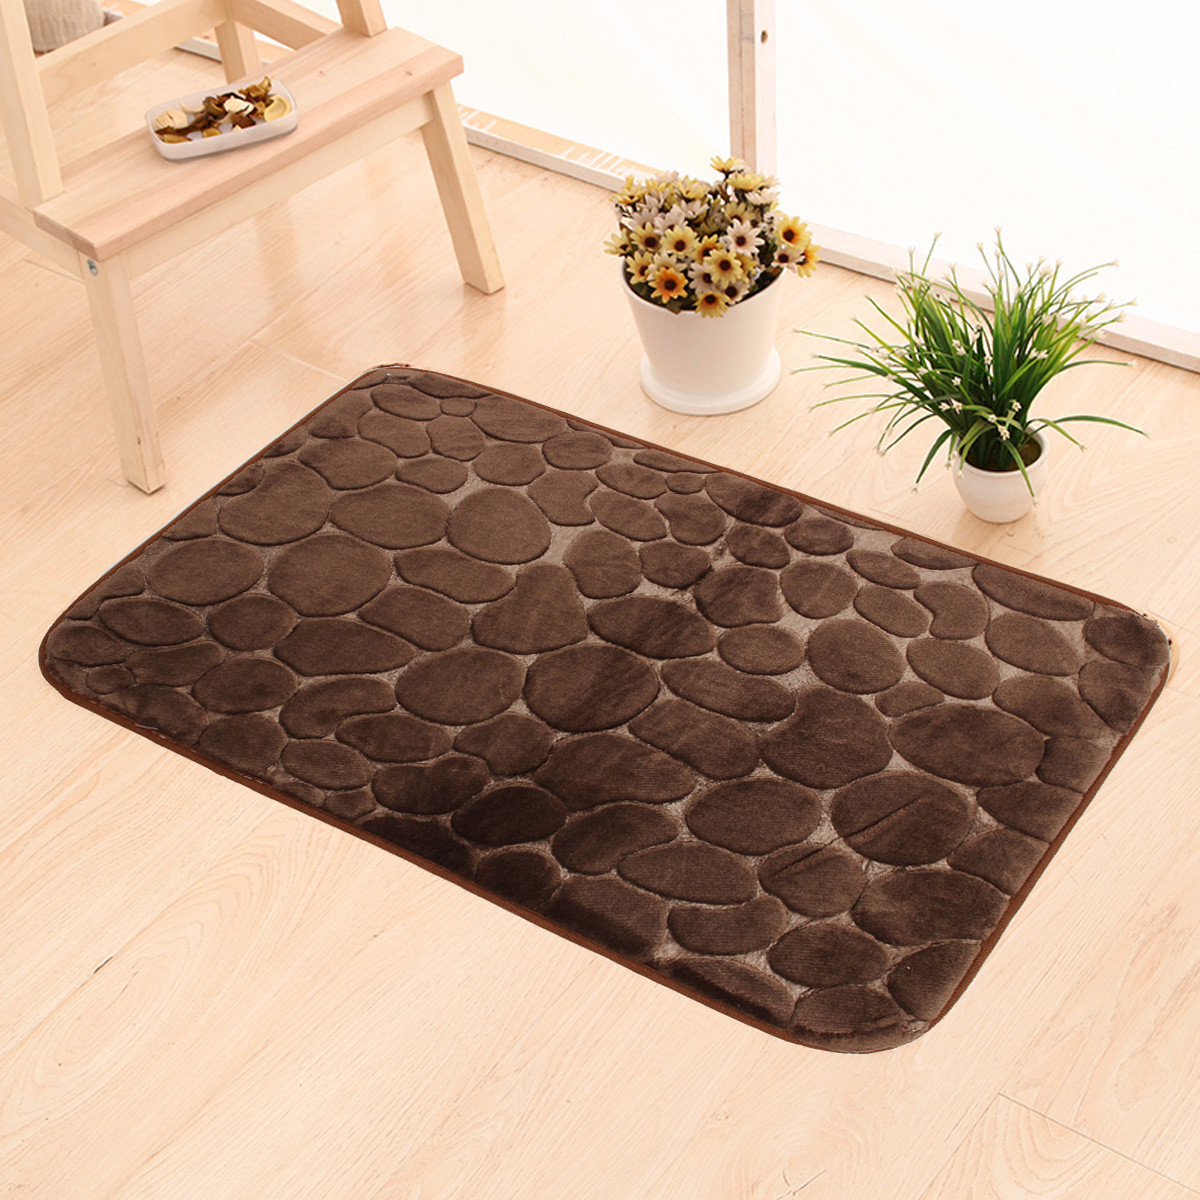 tapis paillasson entr e sol mousse m moire absorbant antid rapant salle de bain ebay. Black Bedroom Furniture Sets. Home Design Ideas